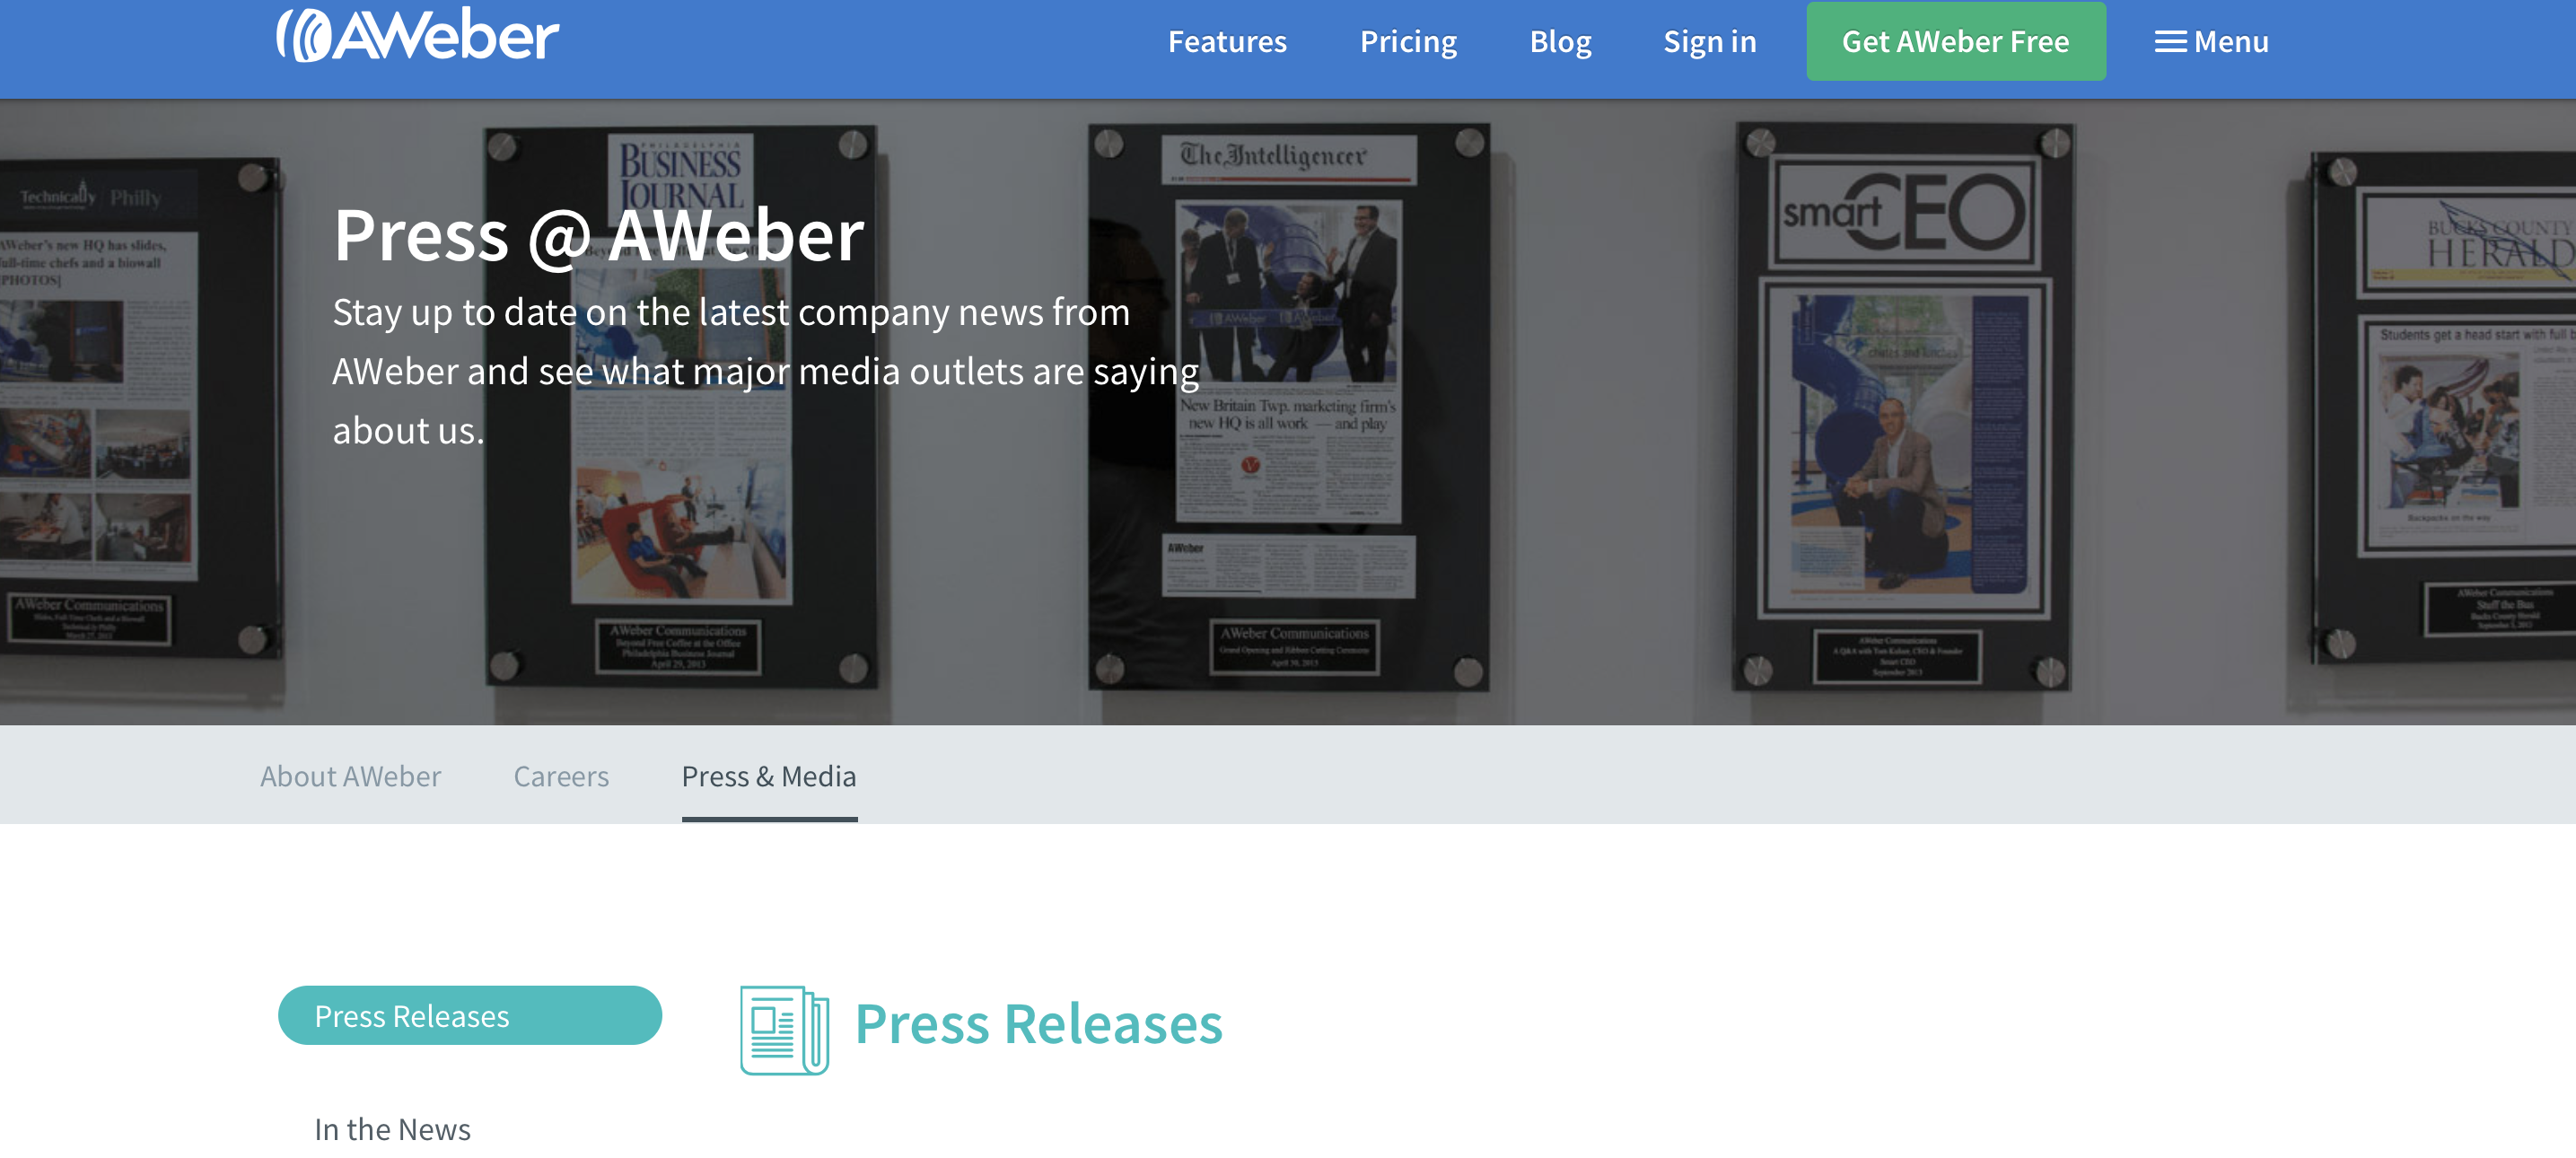 AWeber Press Release page hero section screenshot